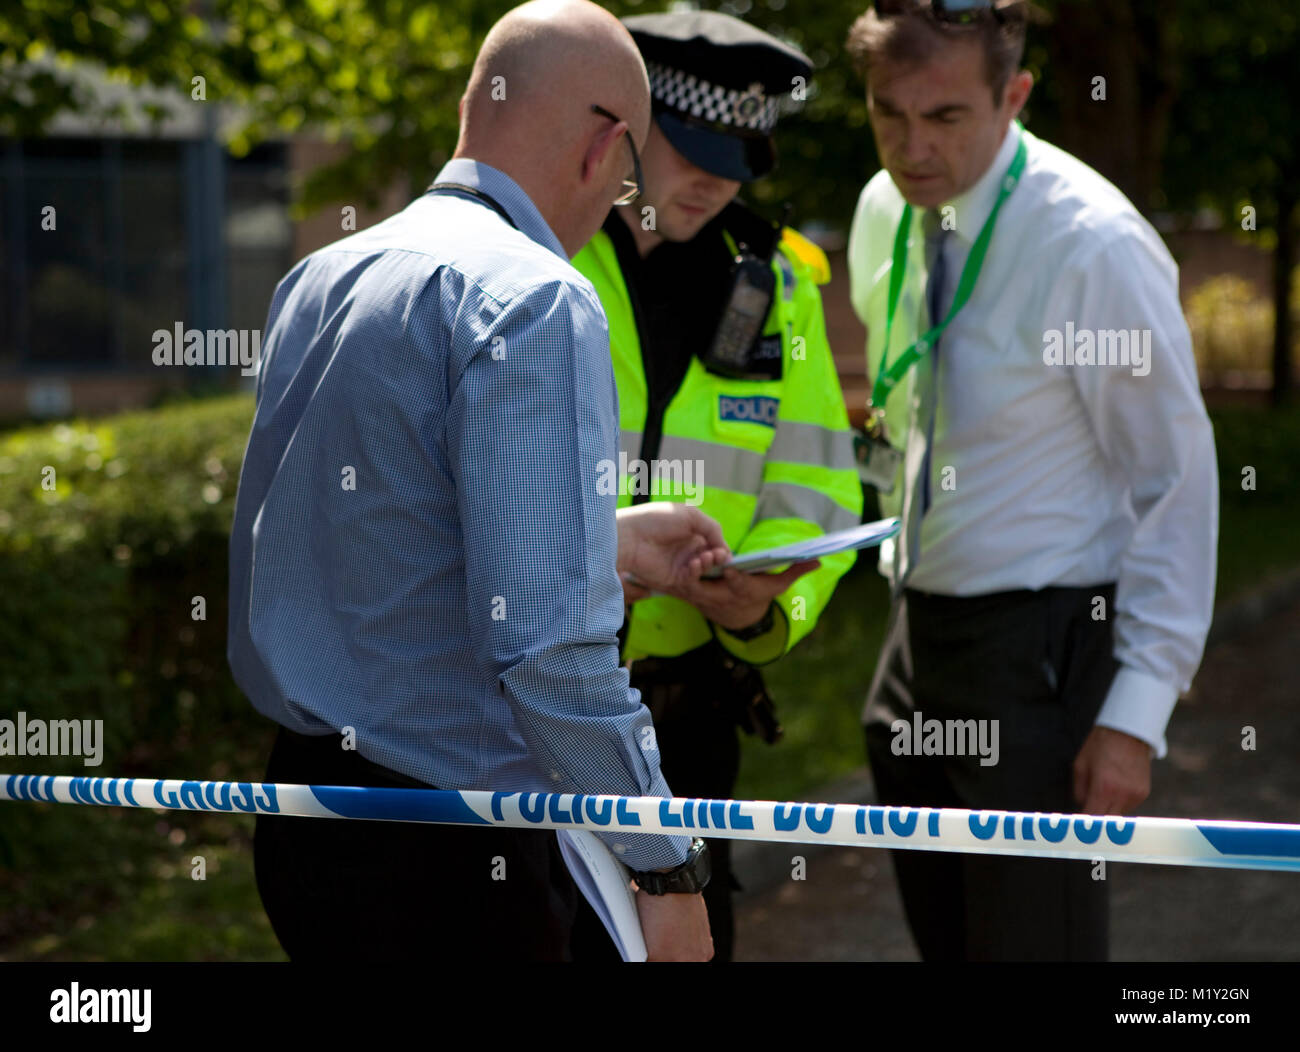 © RICH BOWEN. 27/05/2012. Bracknell, Berkshire, U.K. Thames Valley Police has launched an investigation into - Stock Image